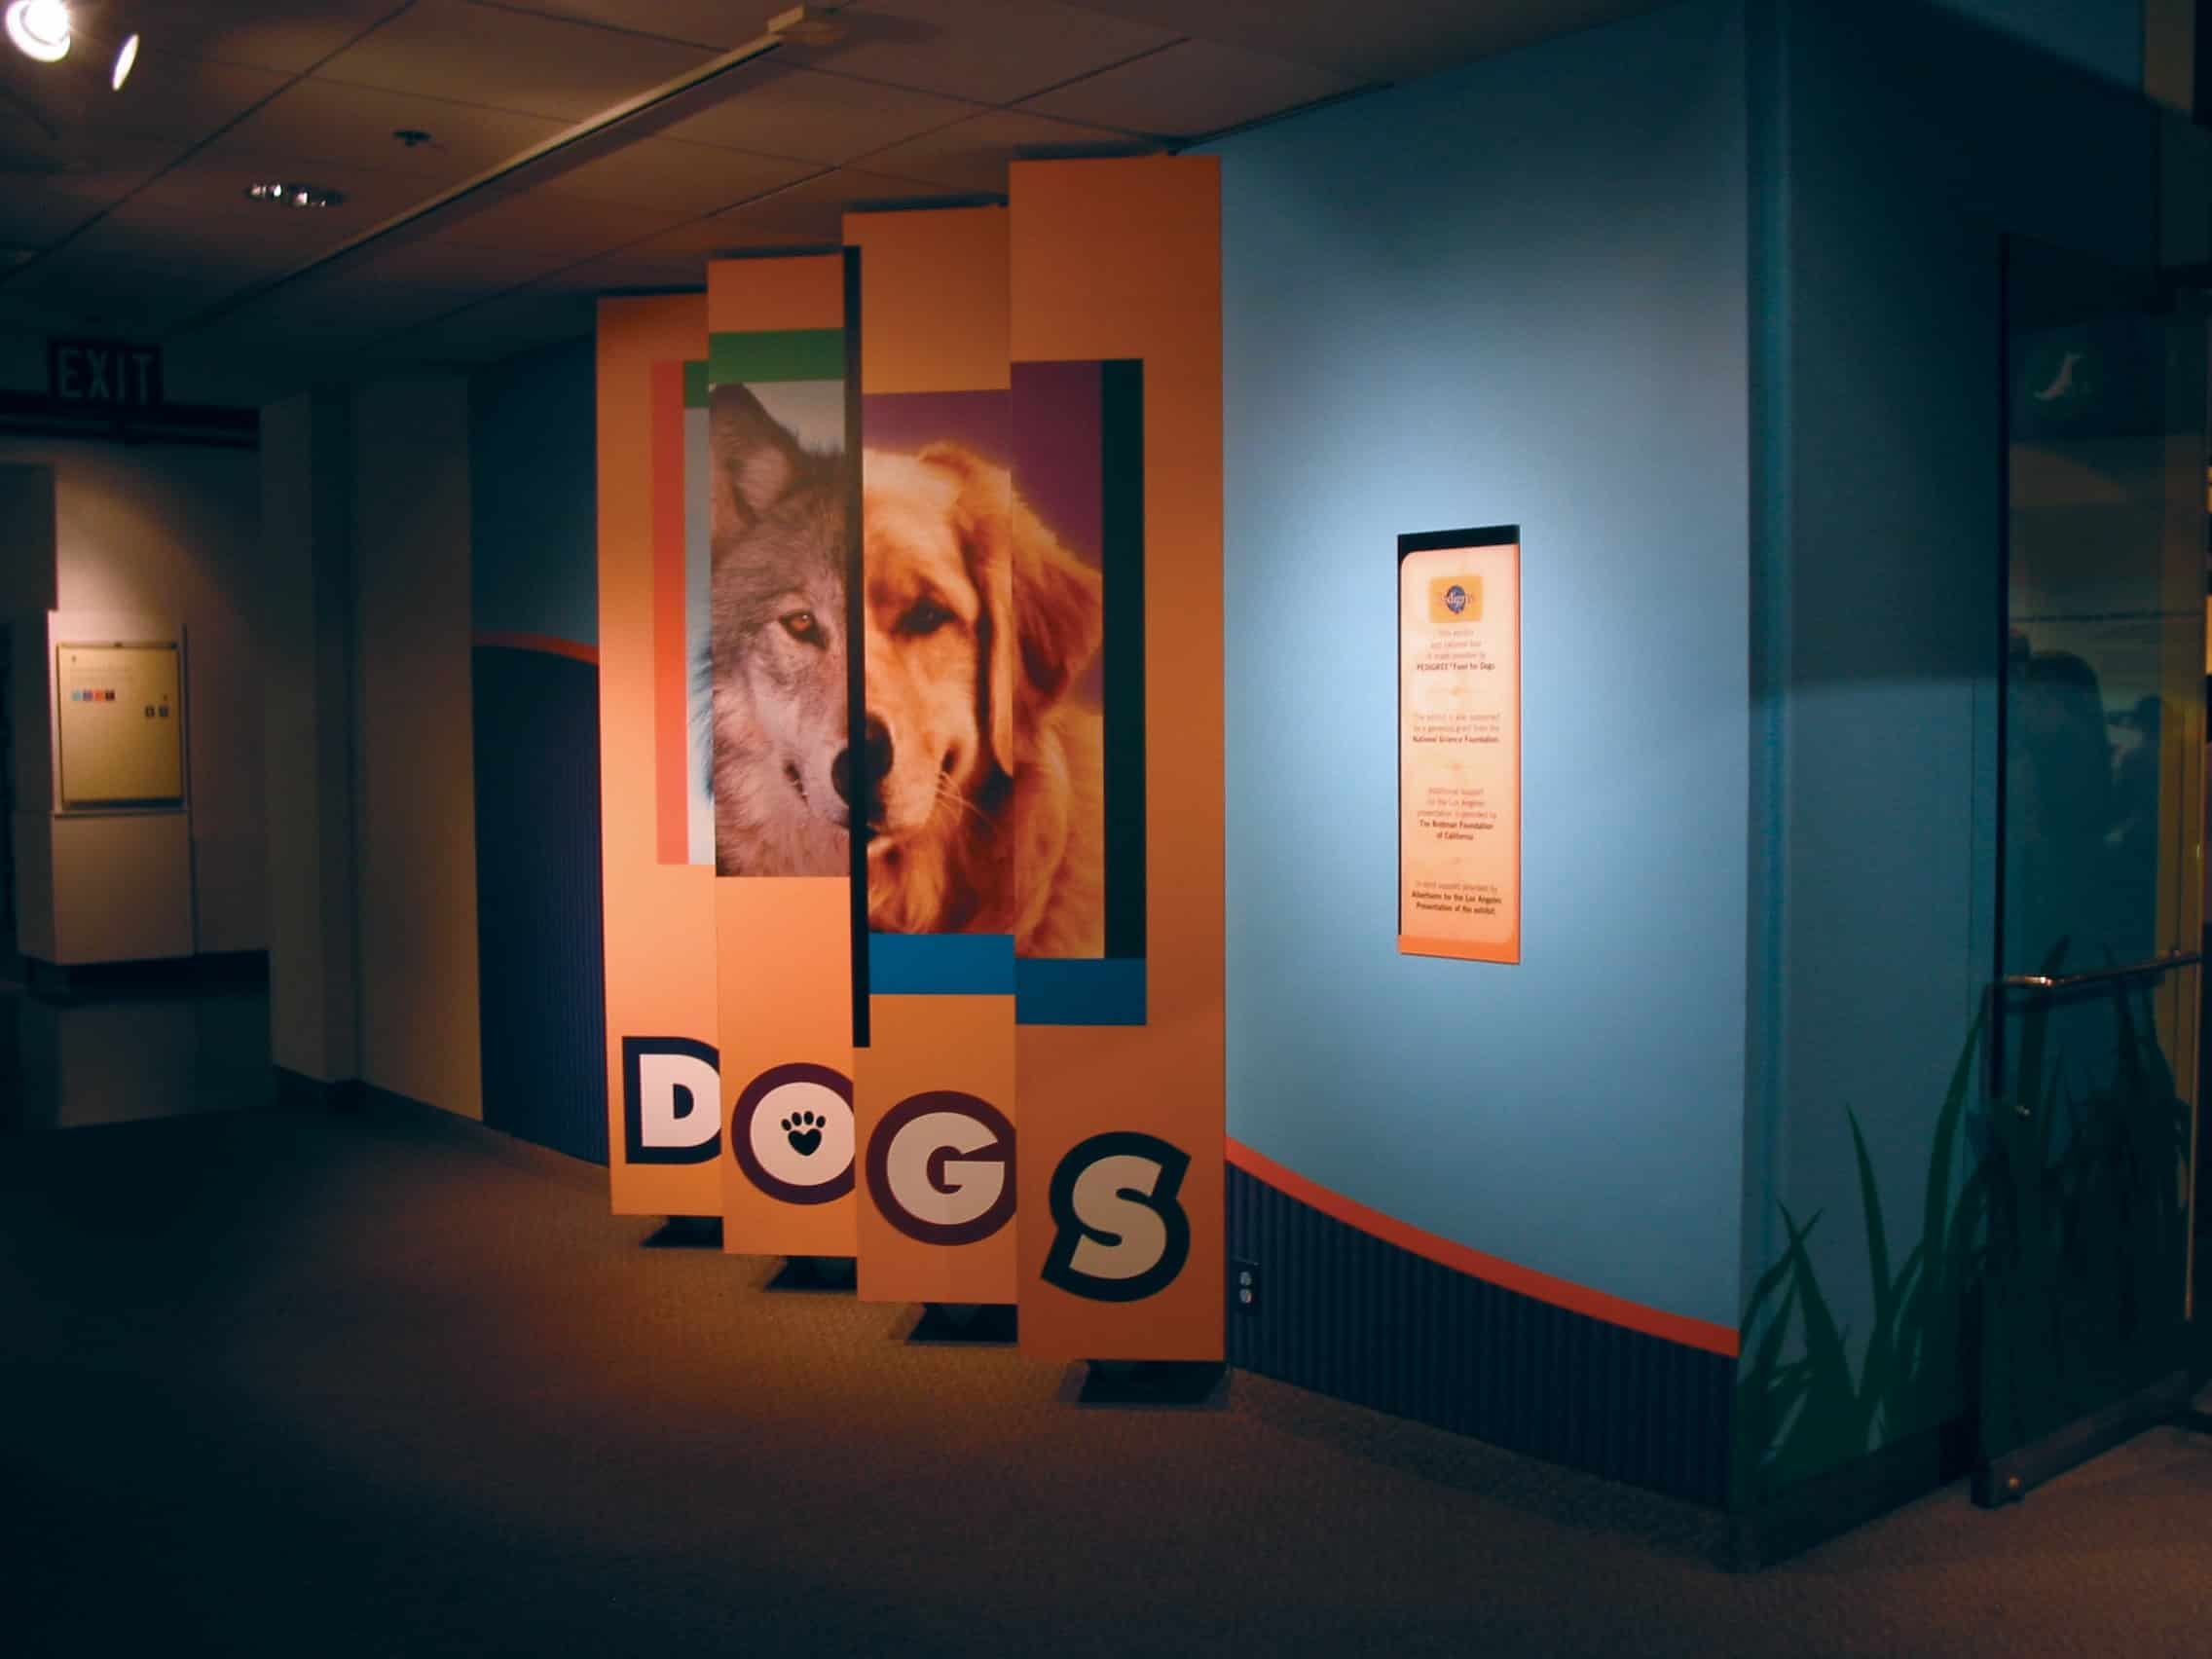 This dog display by Platon Graphics was made with the finest materials a banner can be made with.